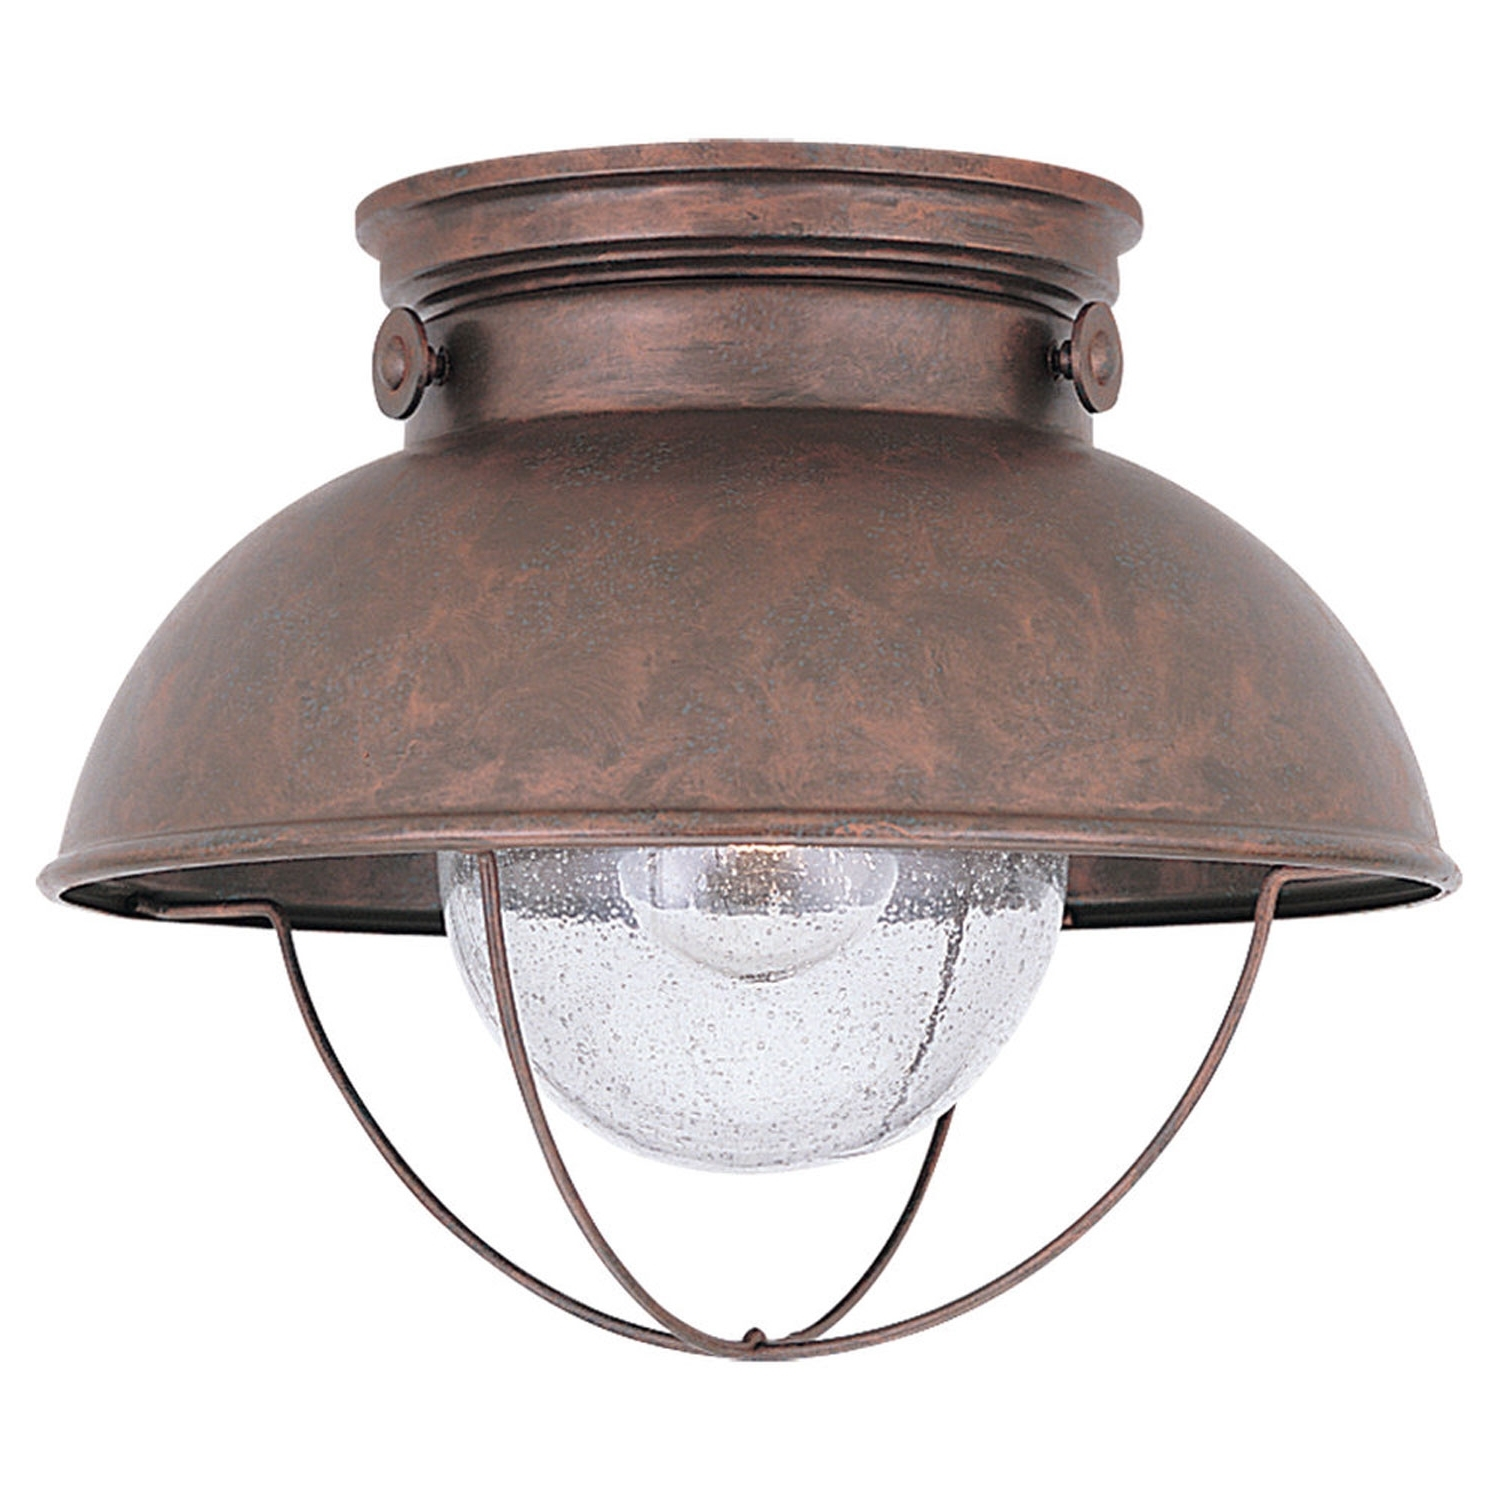 Well Liked Sea Gull Lighting Sebring Weathered Copper Outdoor Ceiling Light On Sale Pertaining To Outdoor Ceiling Mounted Lights (View 2 of 20)